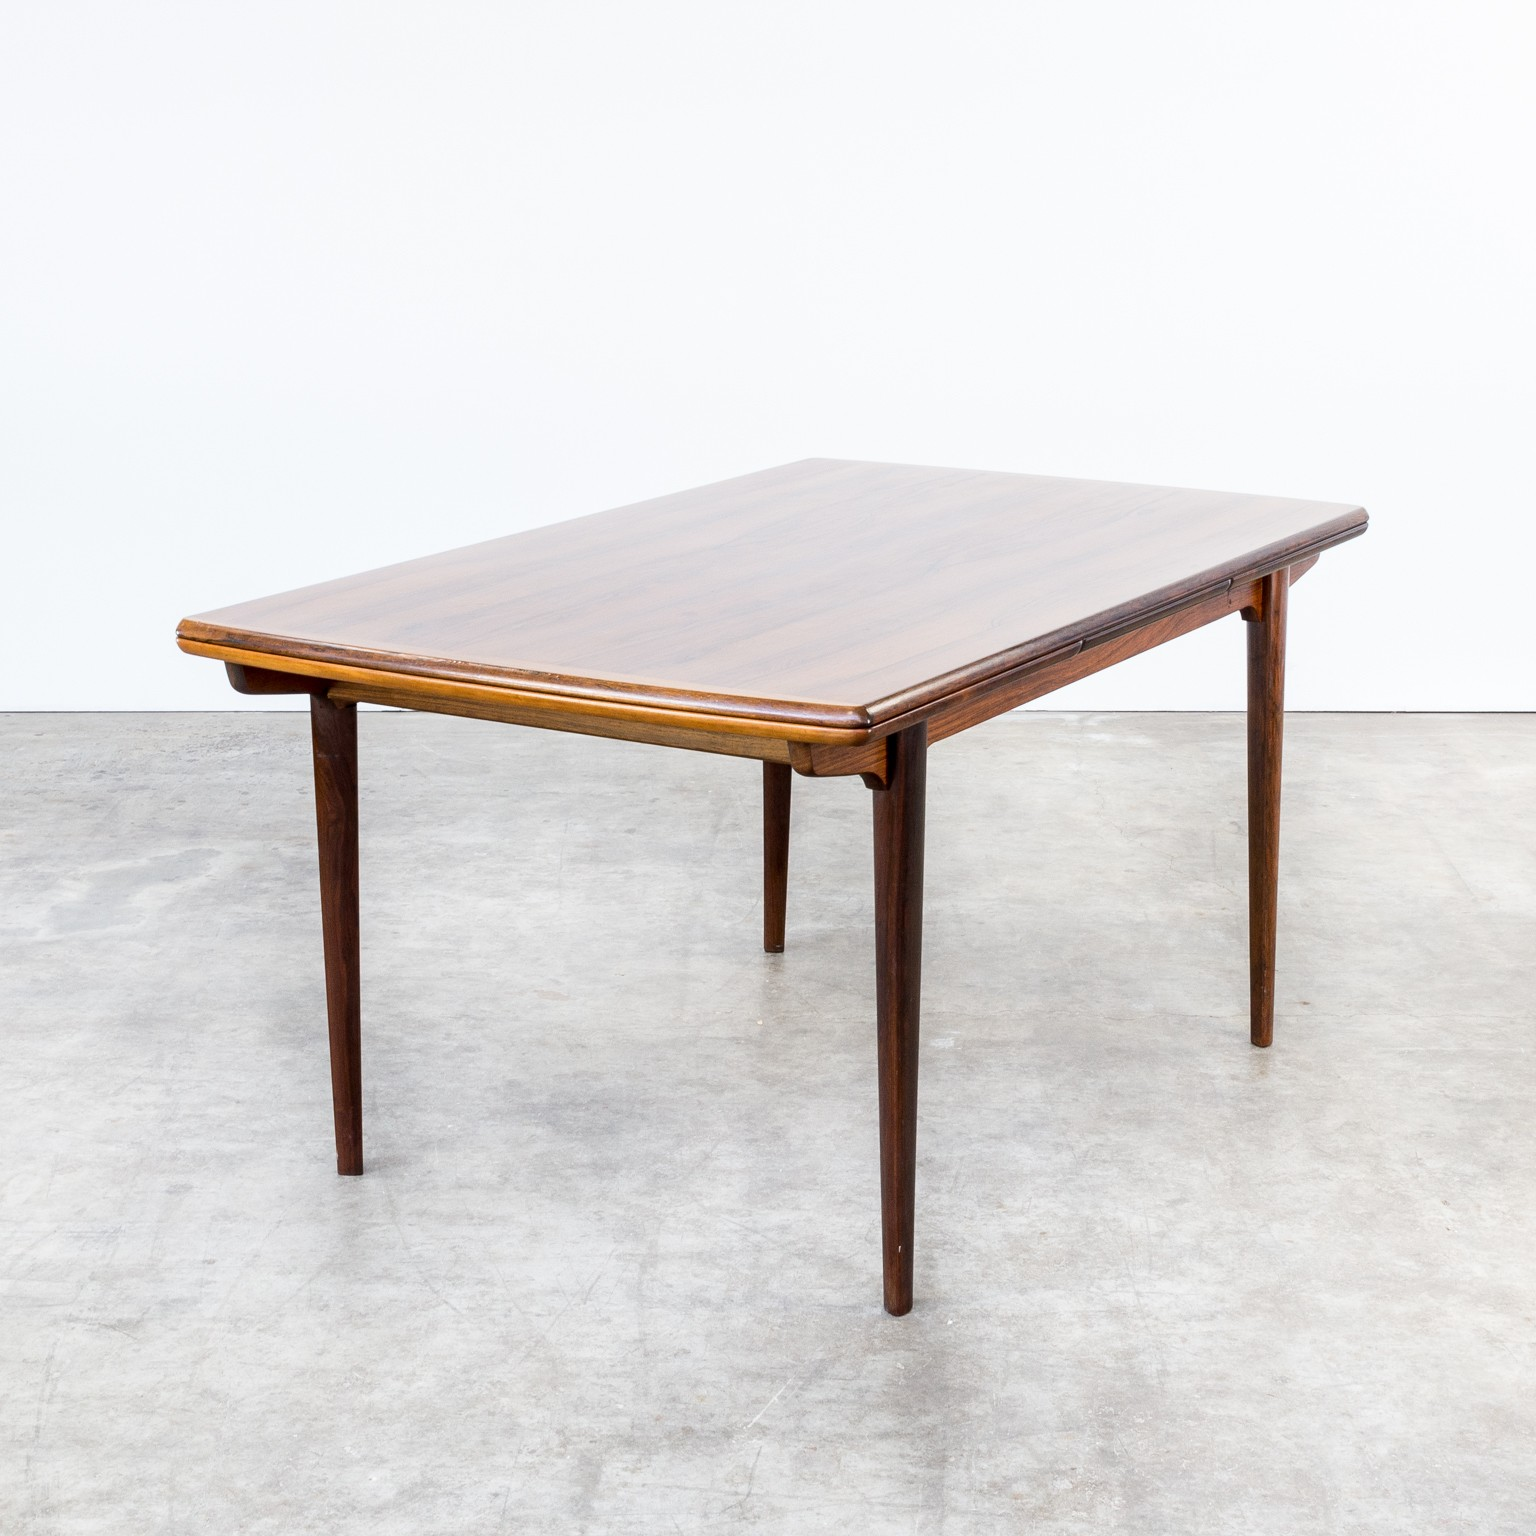 Rosewood dining table extendable with triangle shaped legs 1960s